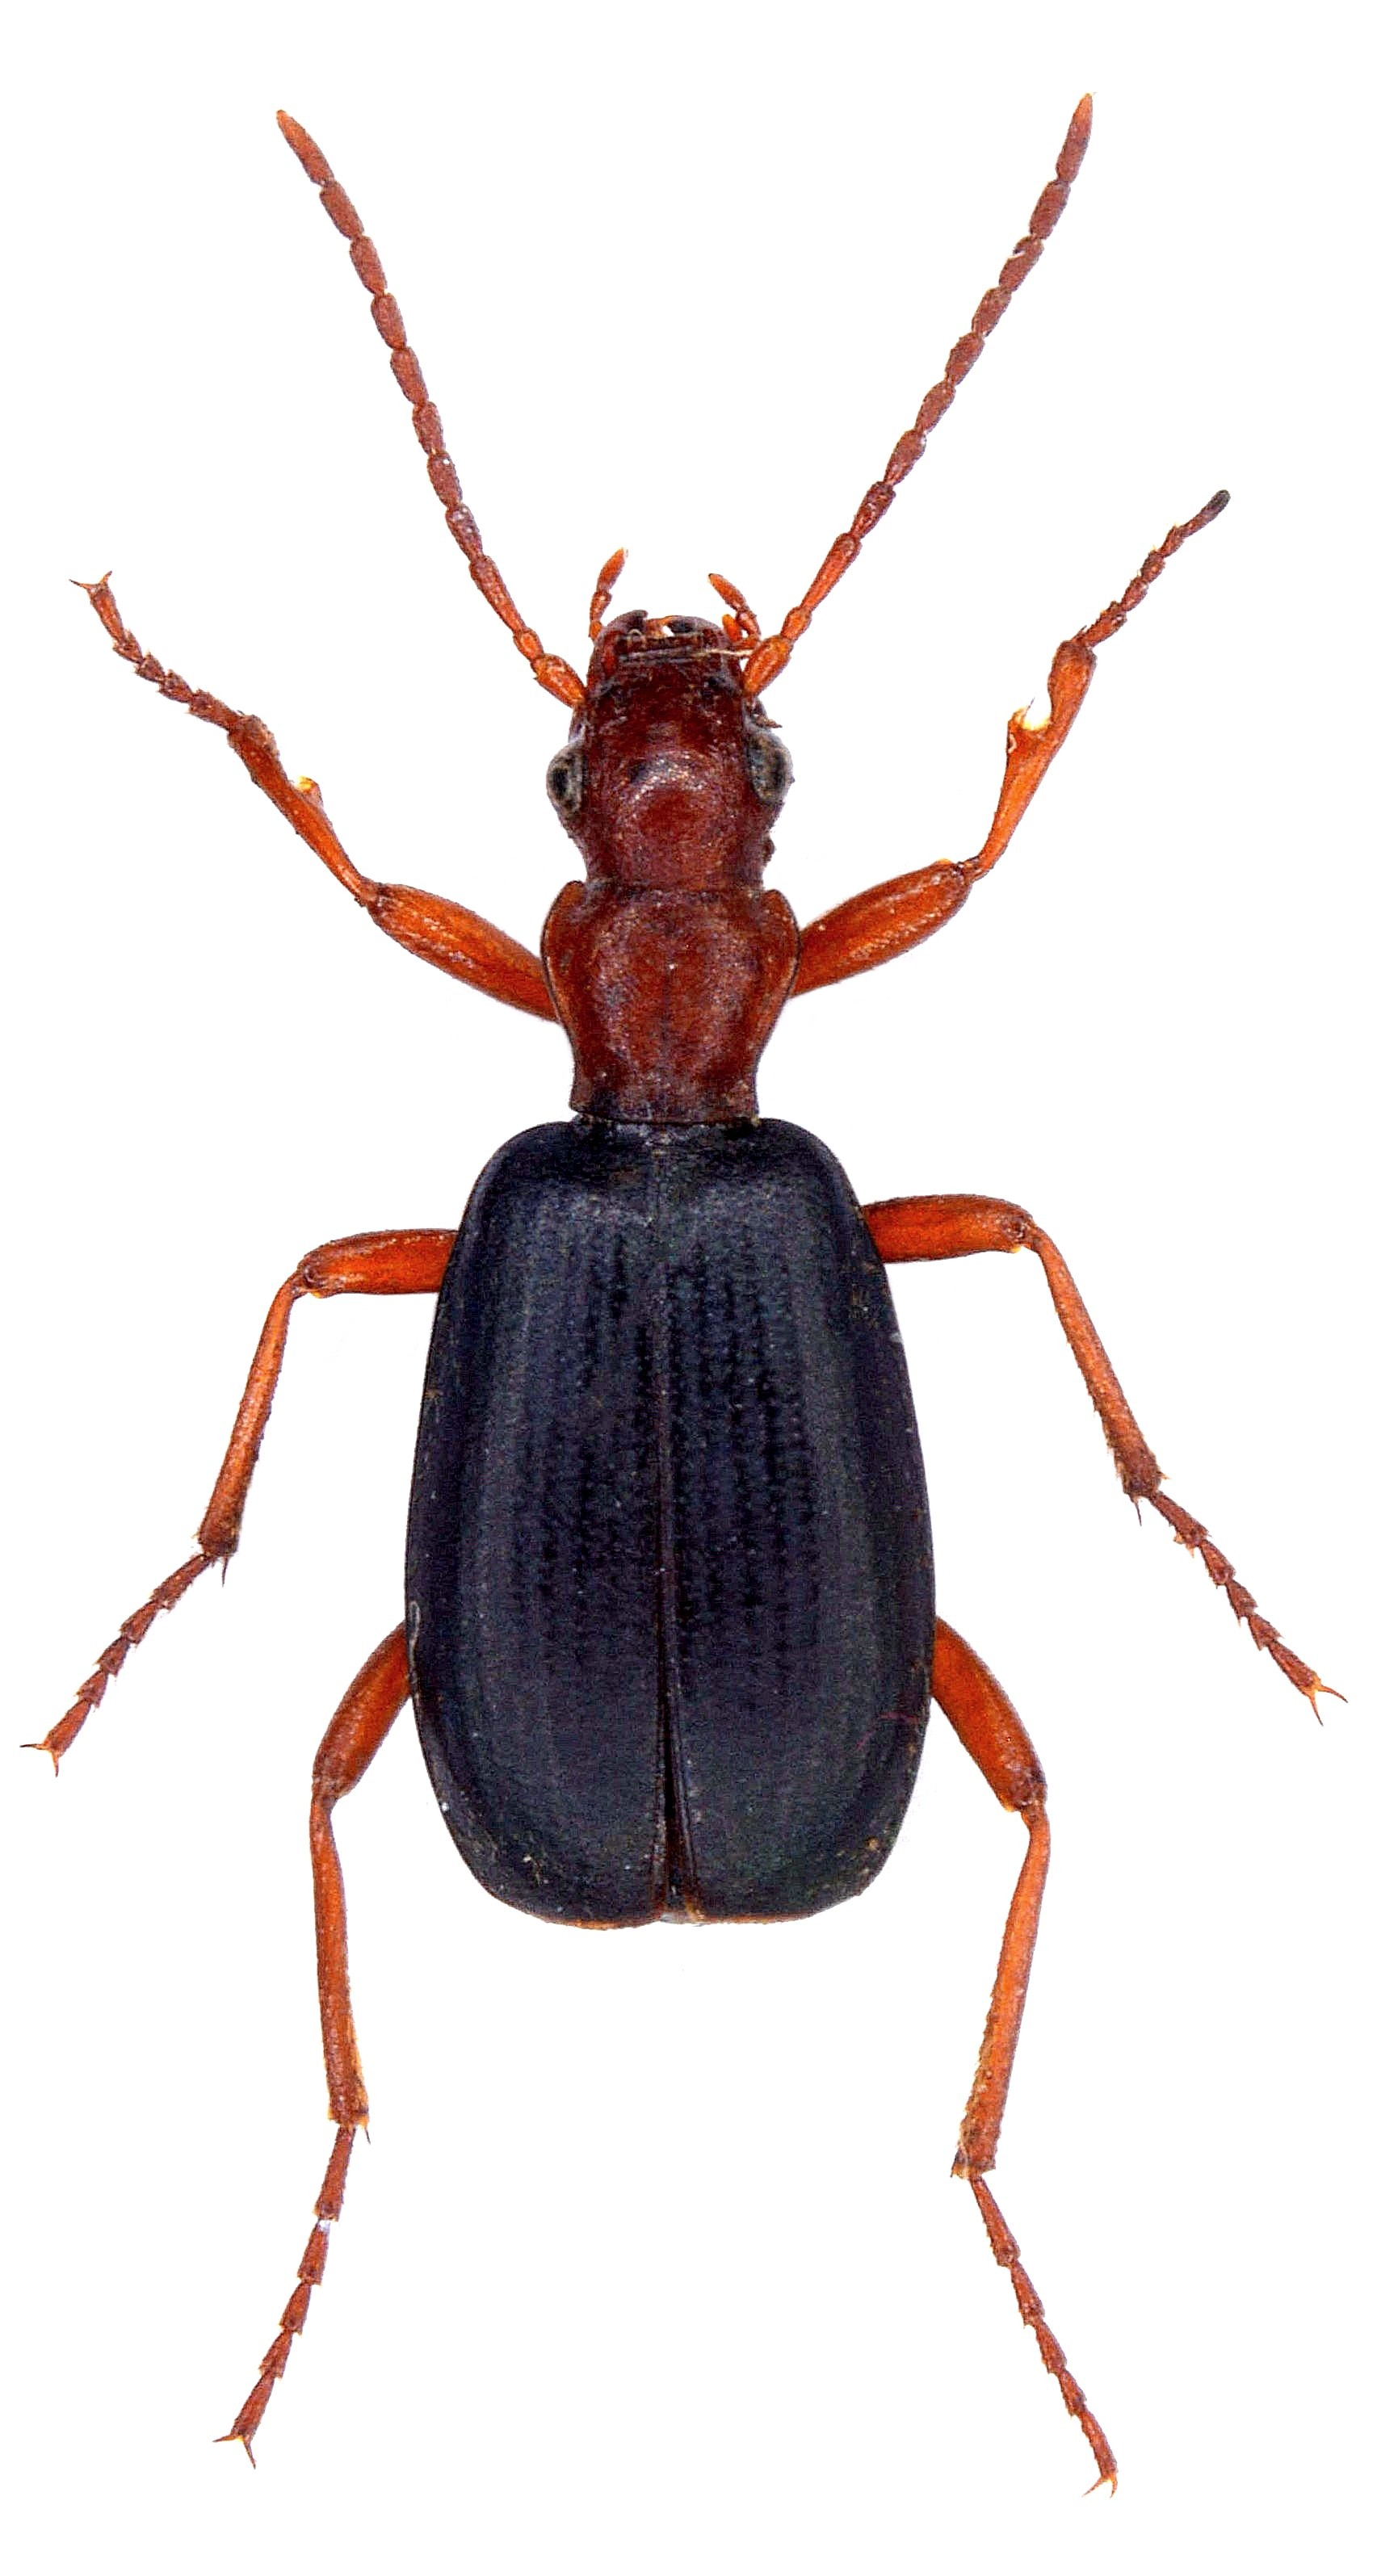 Brachinus crepitans 1